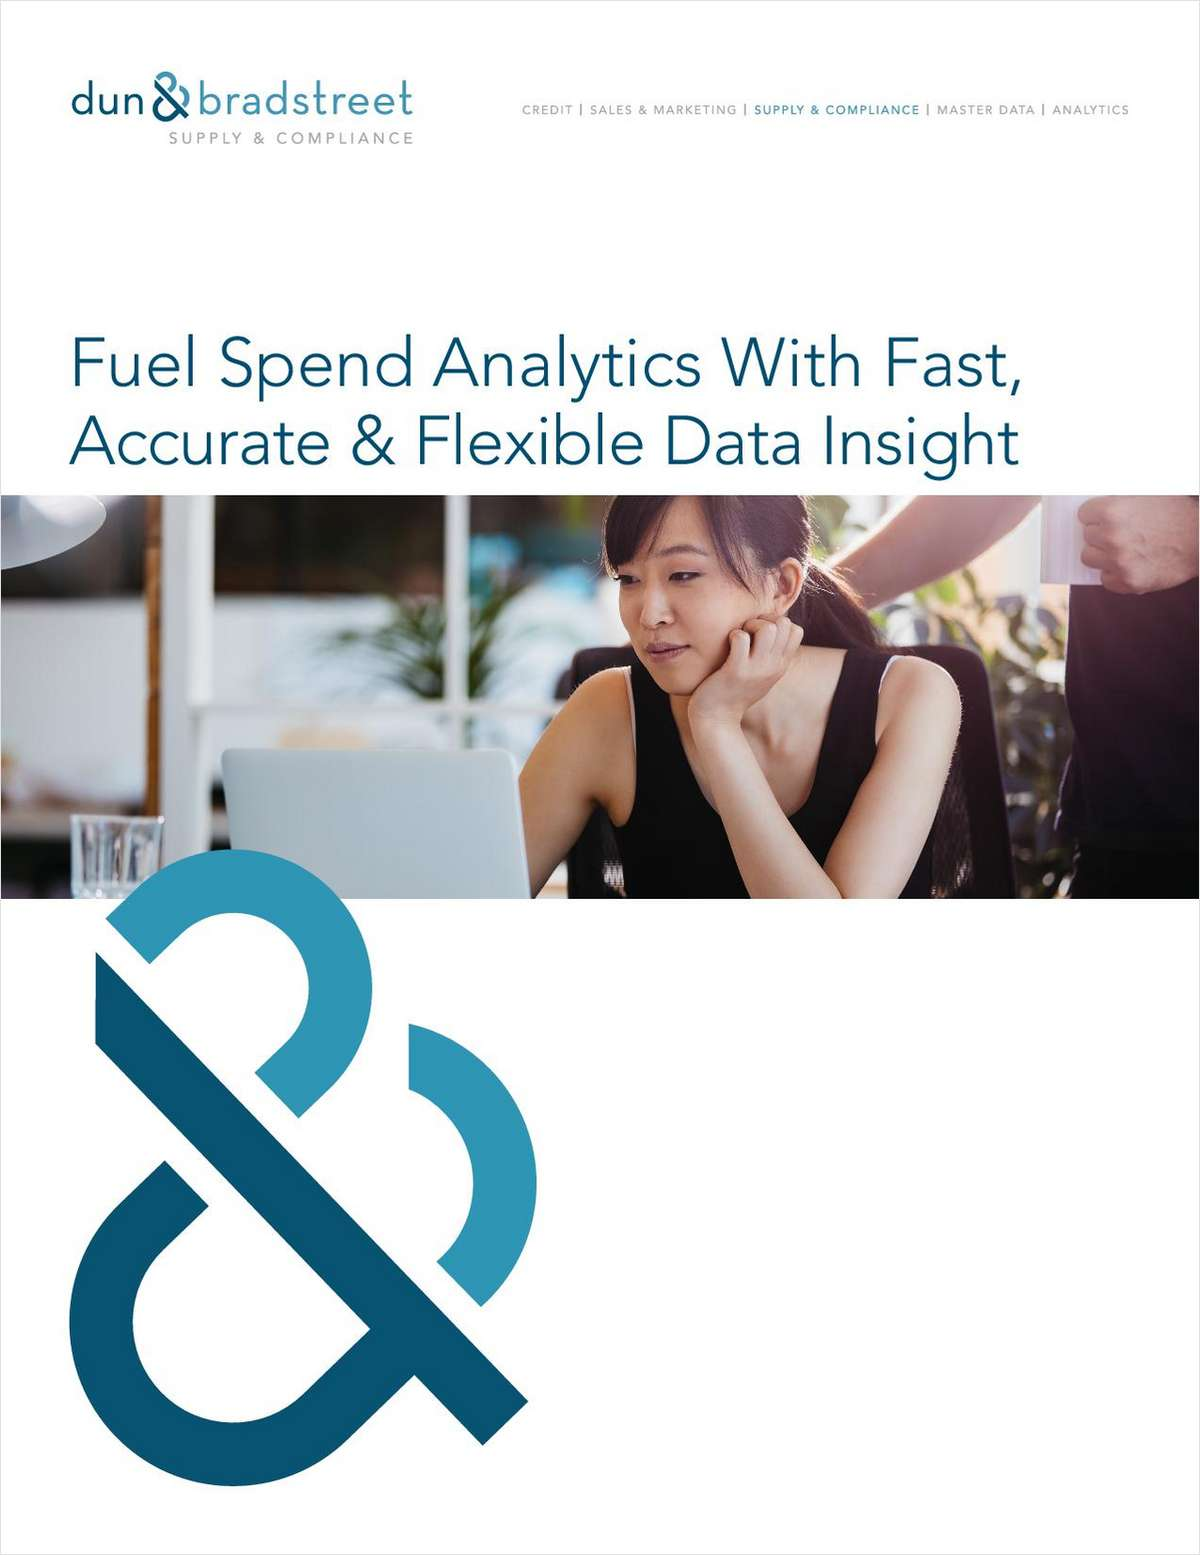 Drive Procurement Cost Reduction with Fast and Accurate Data Insight